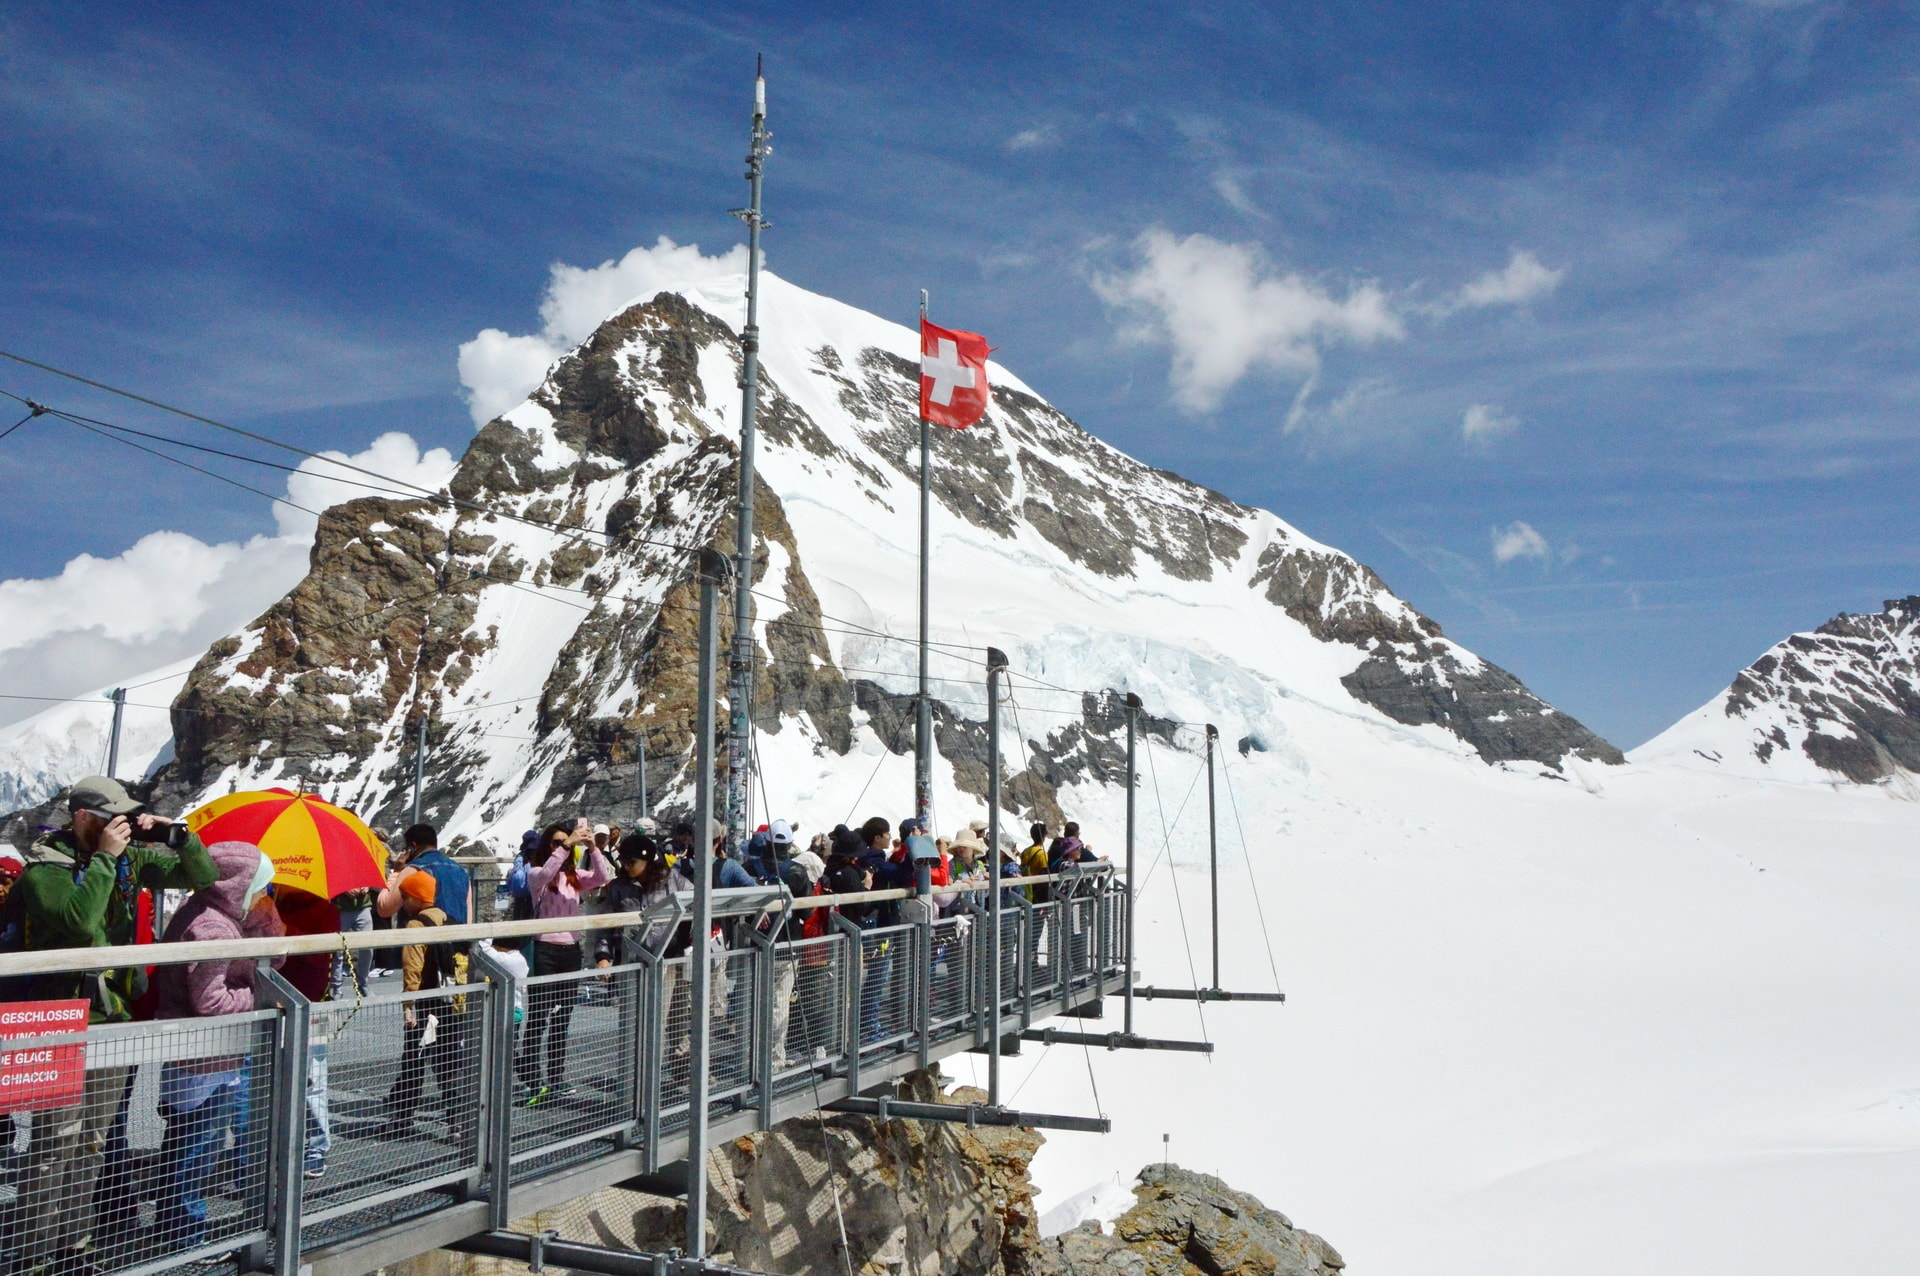 The highest spot at Jungfraujoch – The Top of Europe